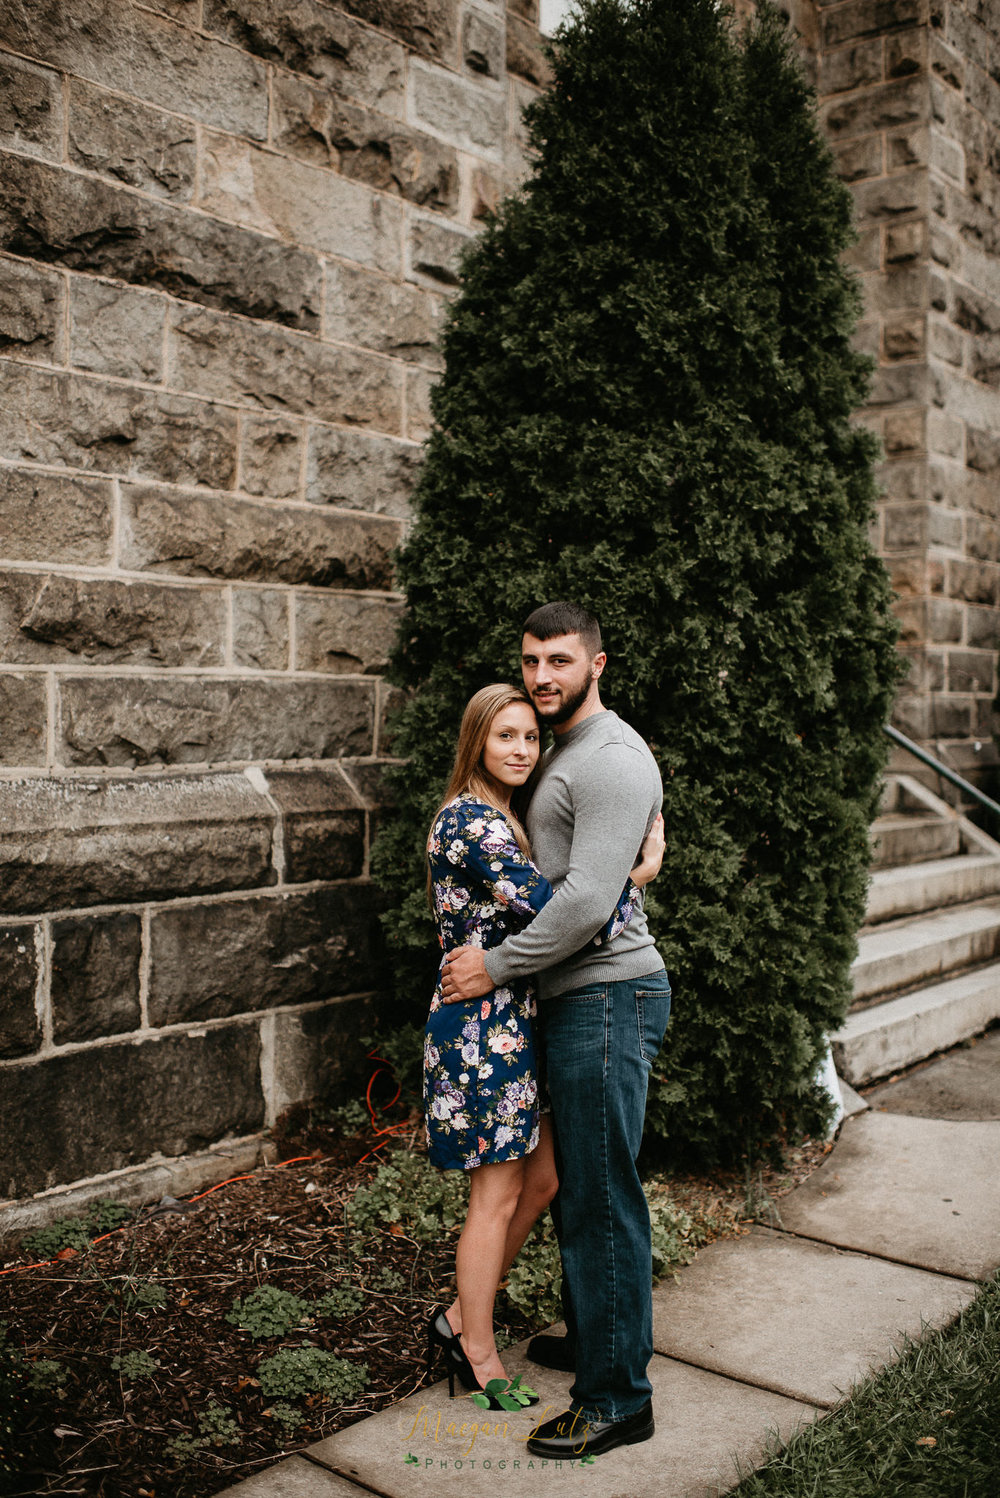 NEPA-Engagement-Session-at-Jim-Thorpe-PA-10.jpg